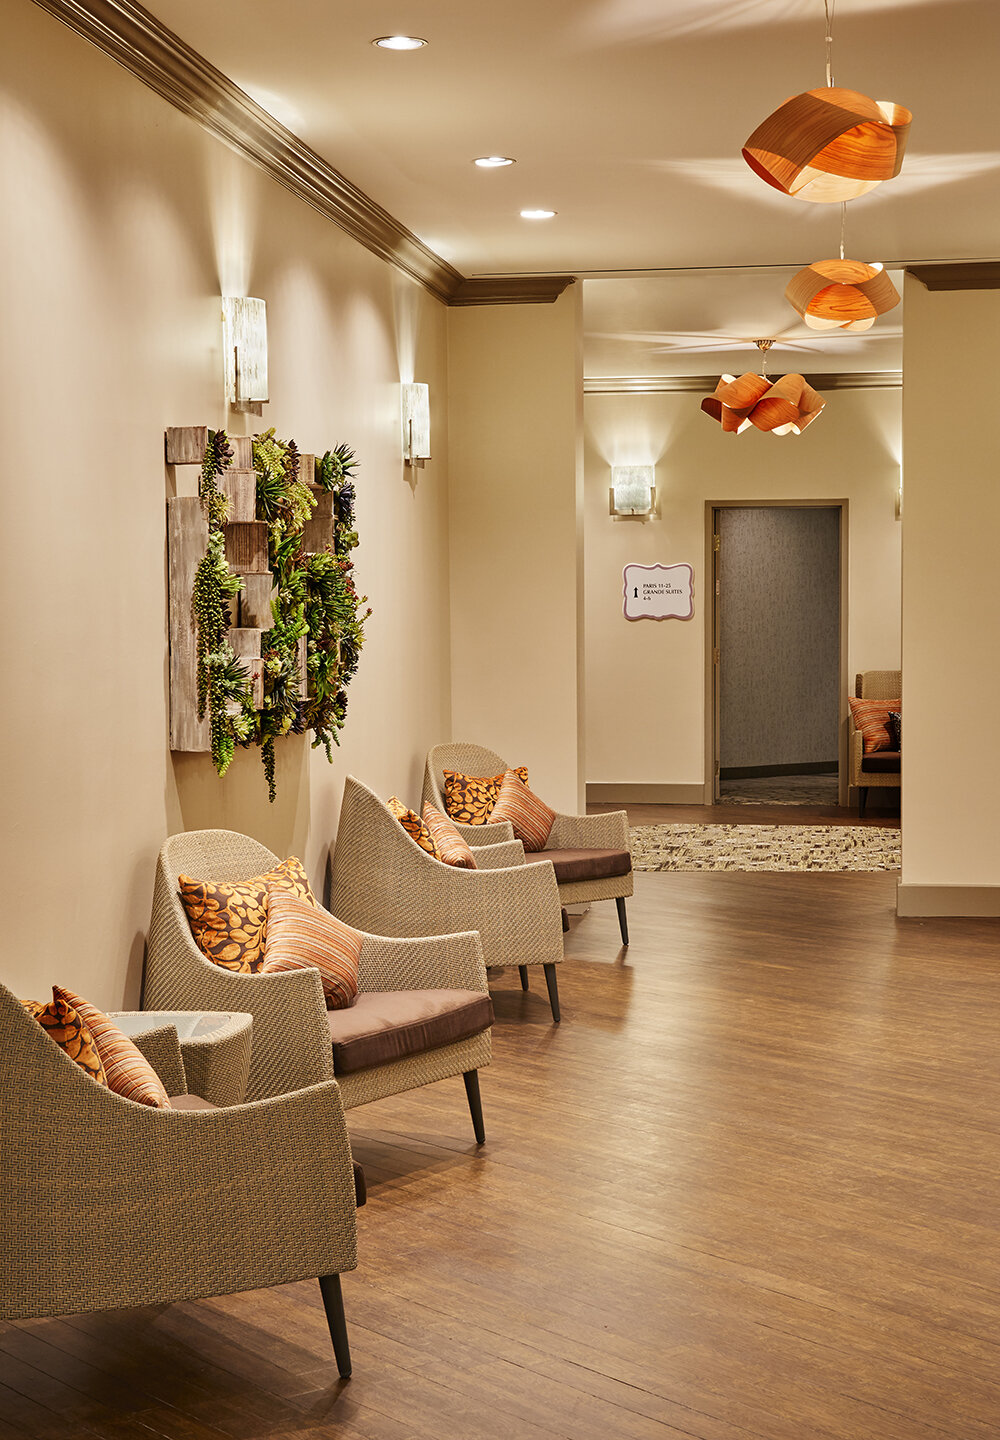 The spa is Inspired by sensory journeys throughout various regions of France.